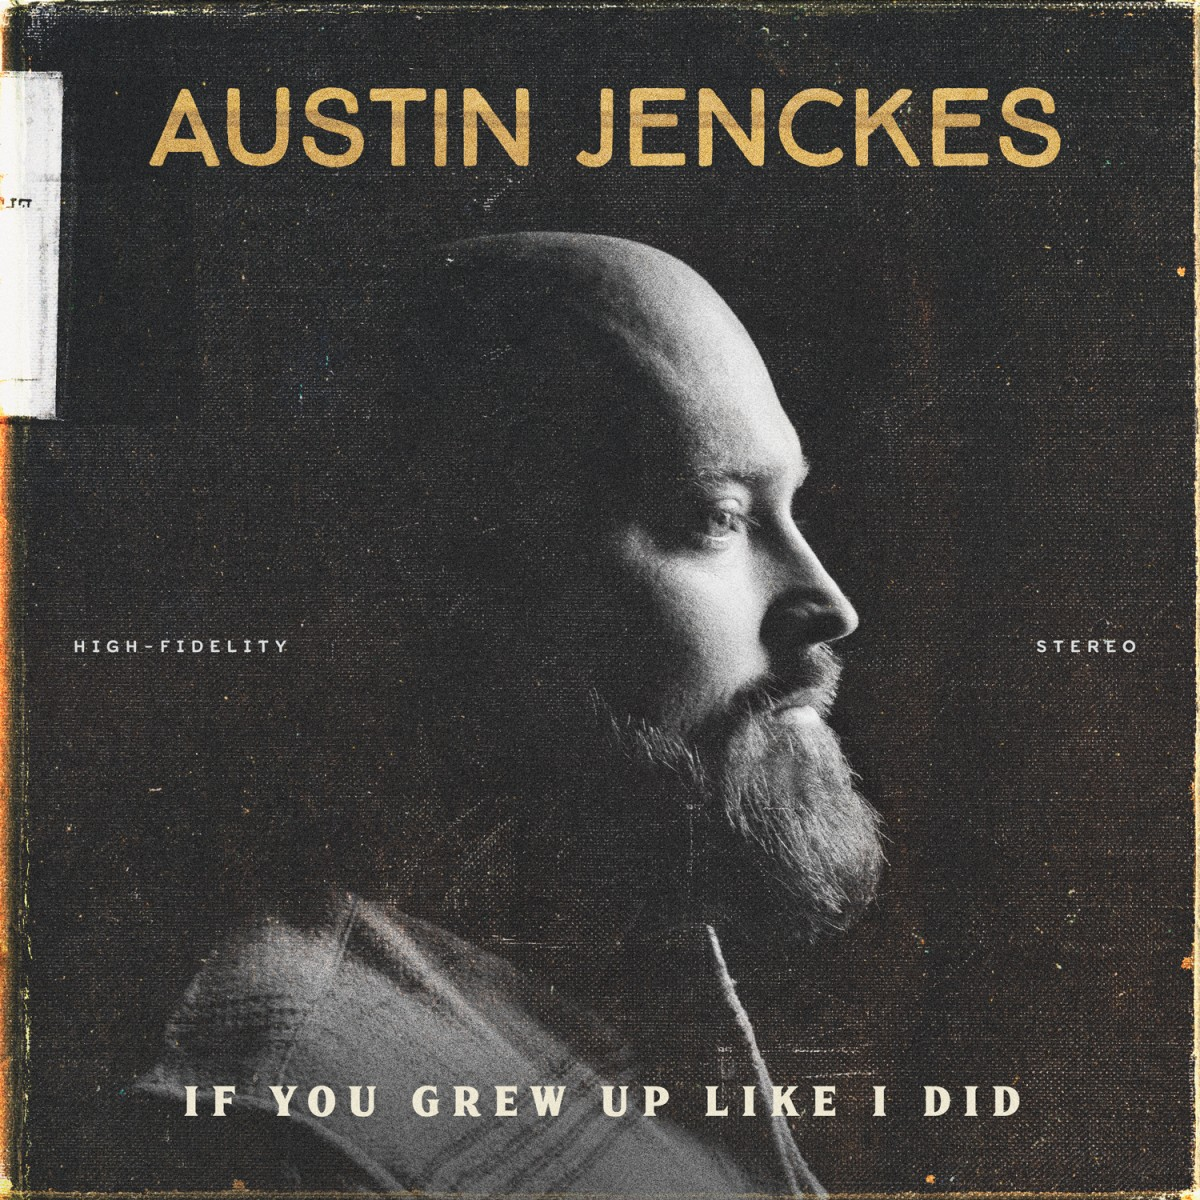 Austin Jenckes – The Voice That Roared by Roman Mitz for Open Spaces